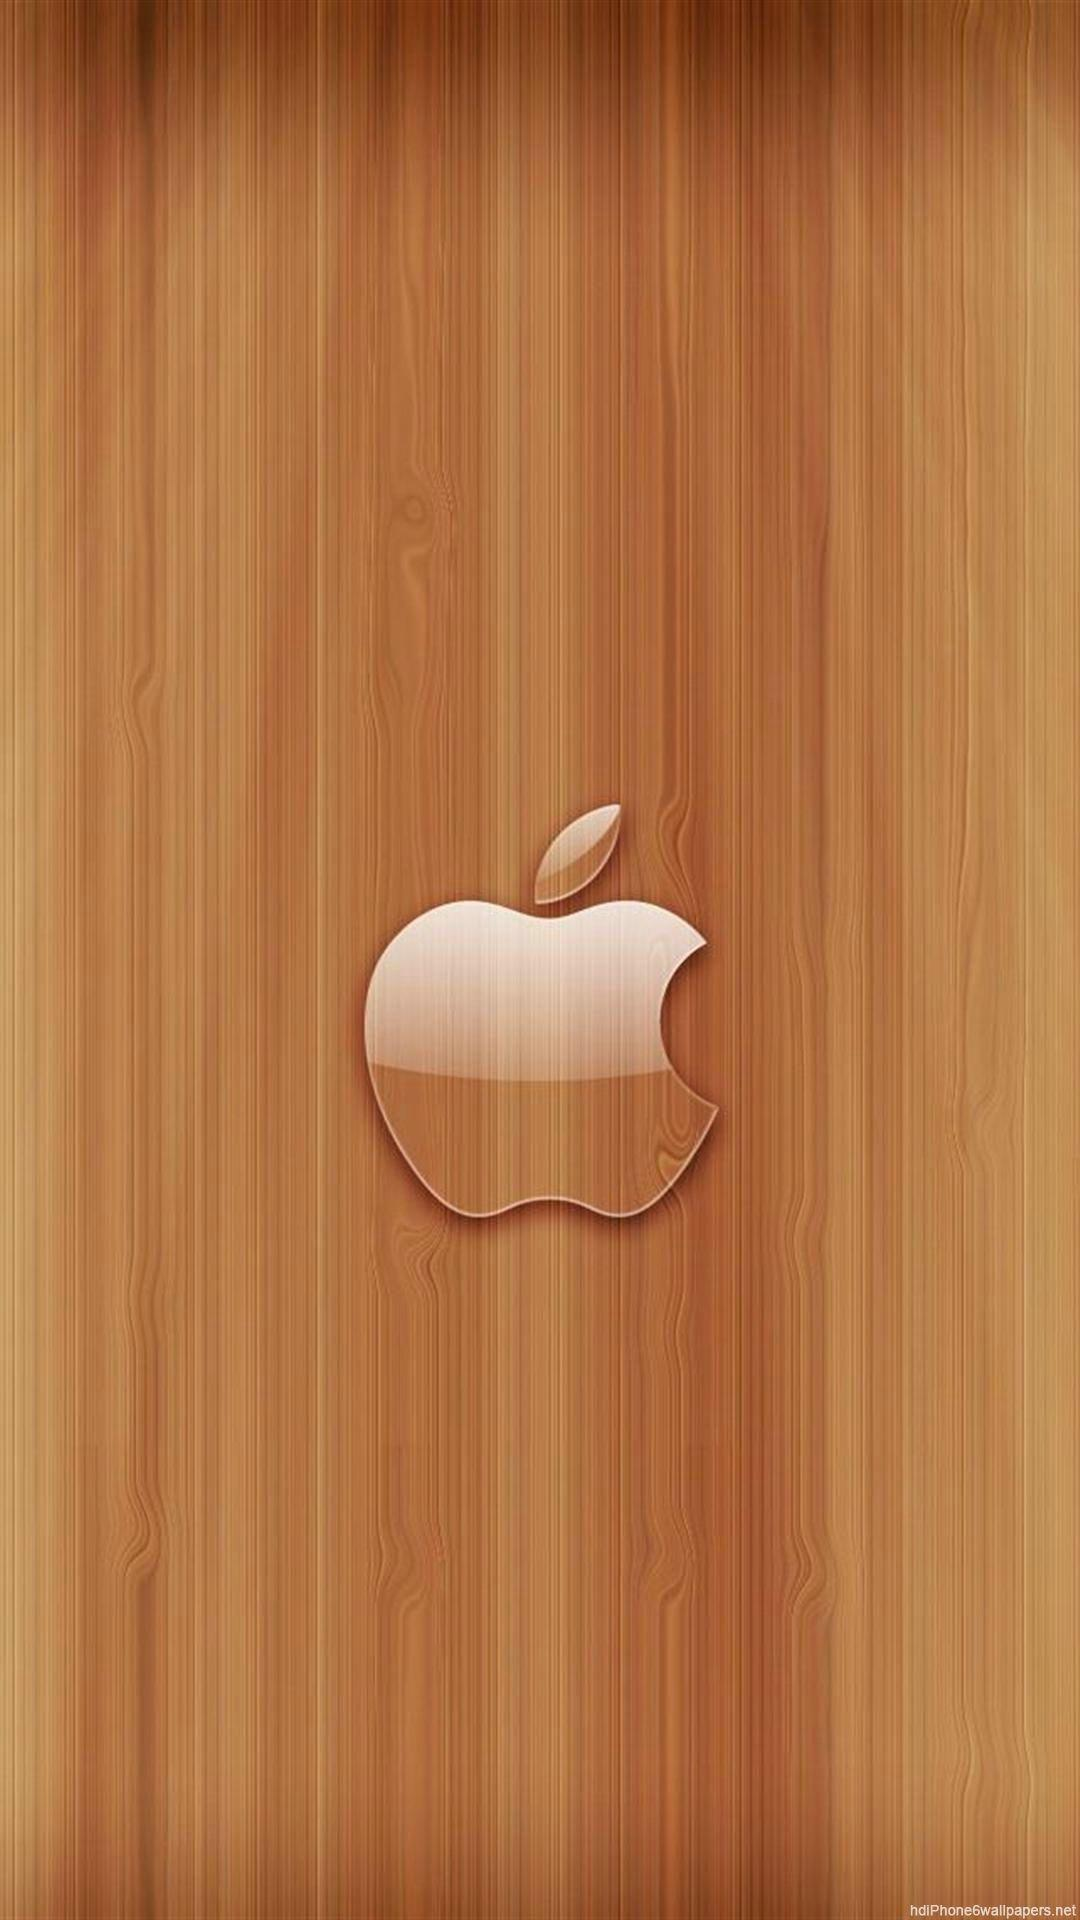 Apple iPhone Wallpapers HD Group